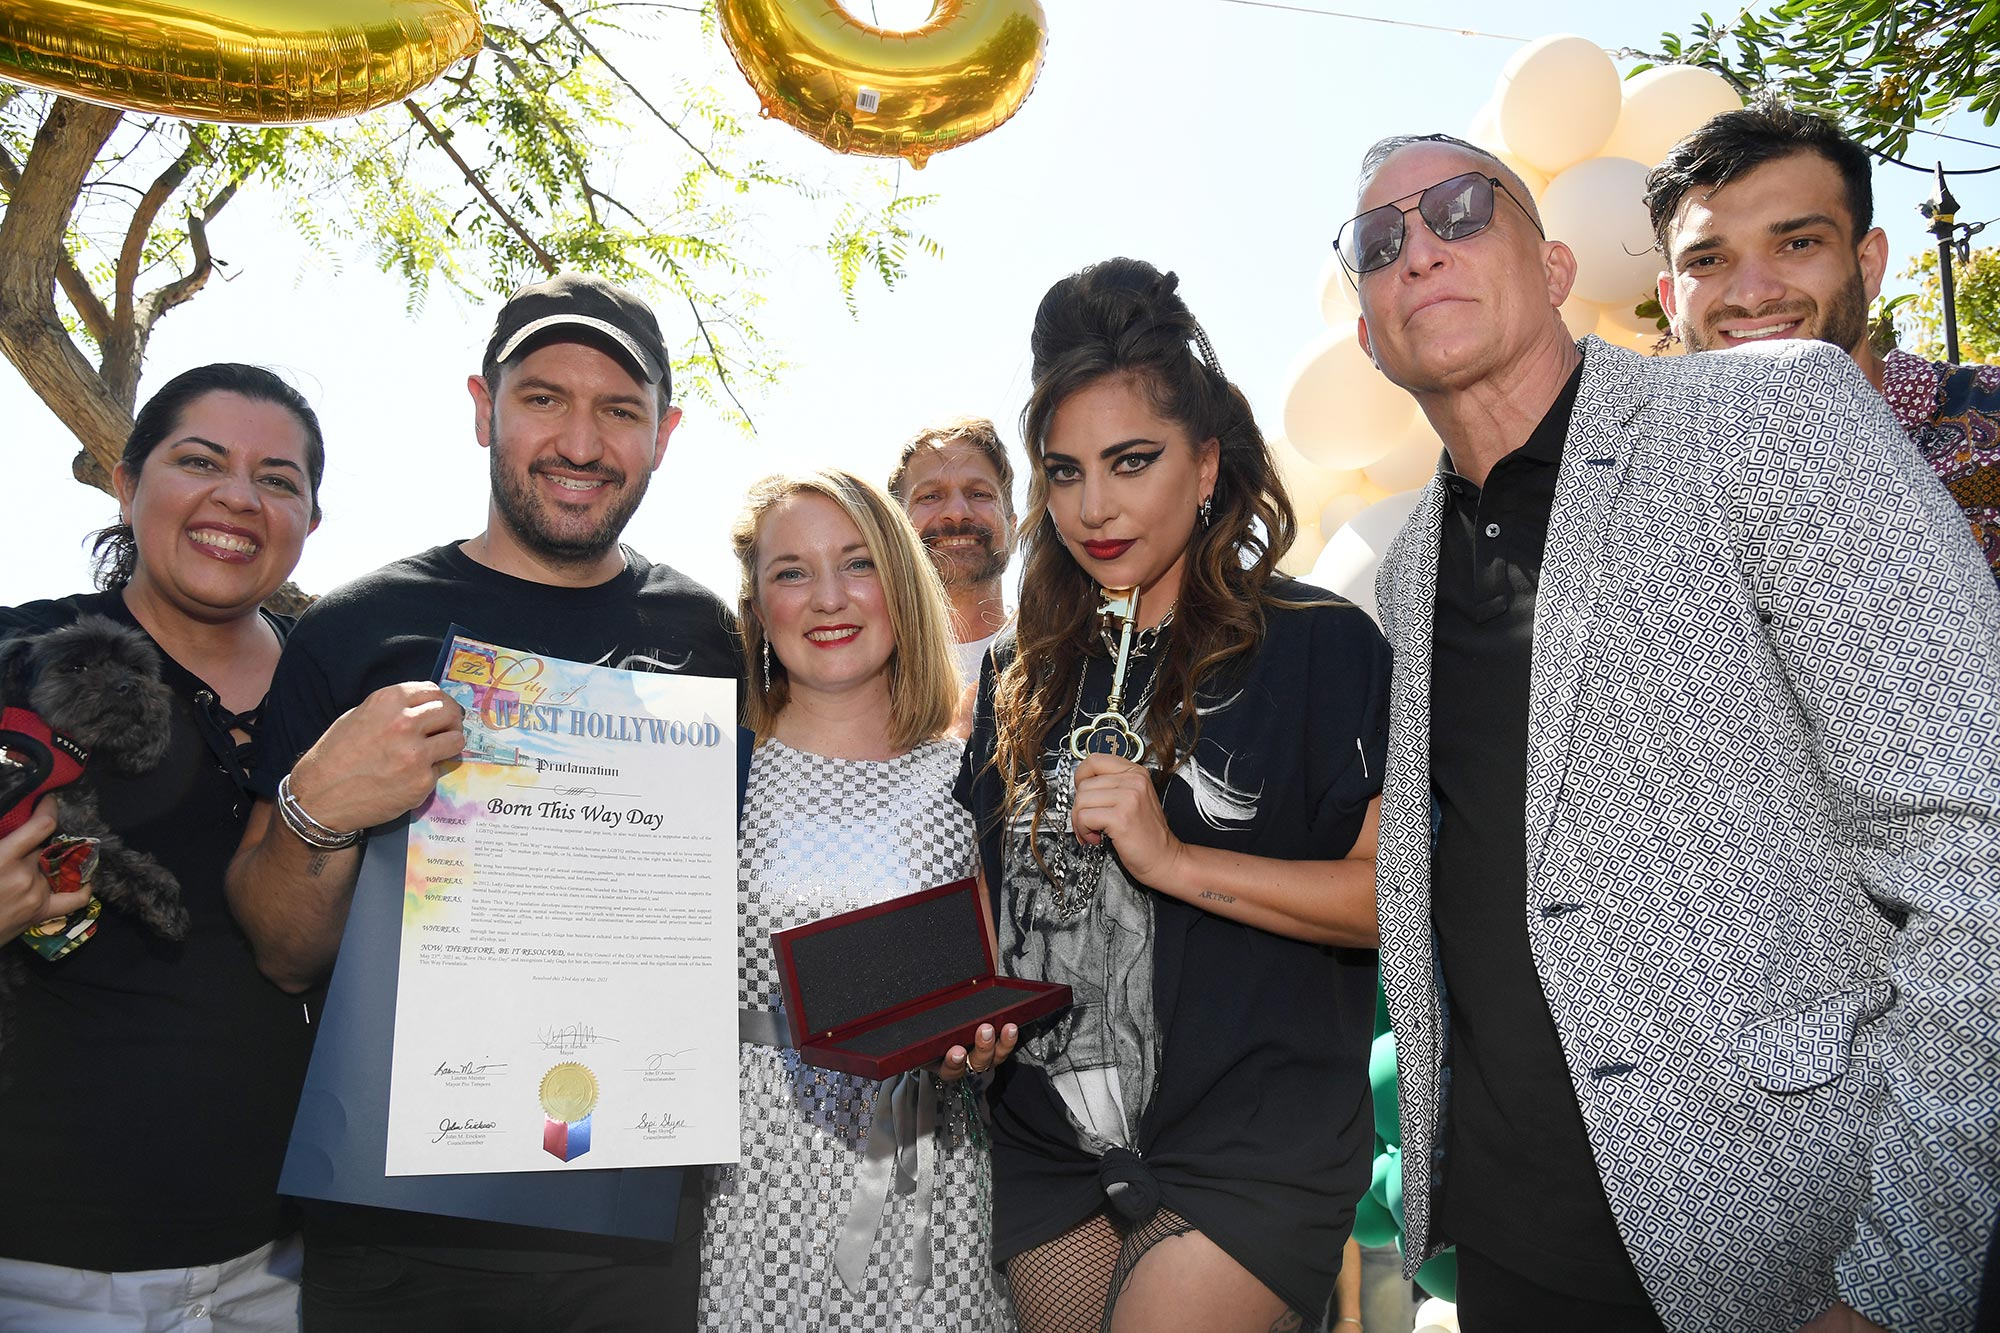 """Bobby Campbell, City of West Hollywood Mayor Lindsey P. Horvath, Lady Gaga and David Cooley pose on stage as """"Born This Way Day"""""""